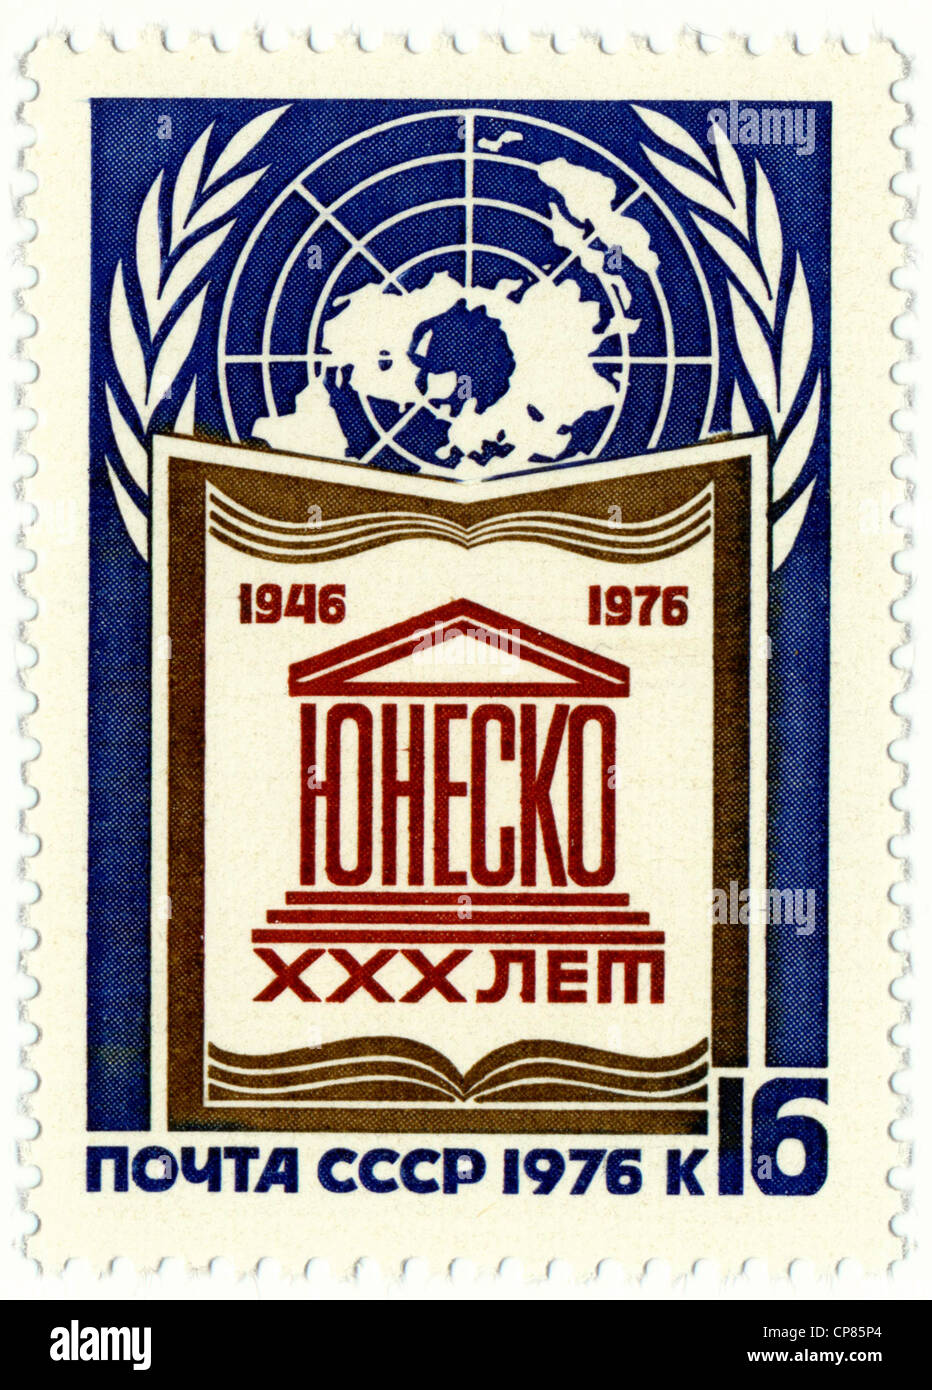 Historic postage stamps of the USSR, political motives, 30th Anniversary of the United Nations, UNESCO, 1976, Historische - Stock Image